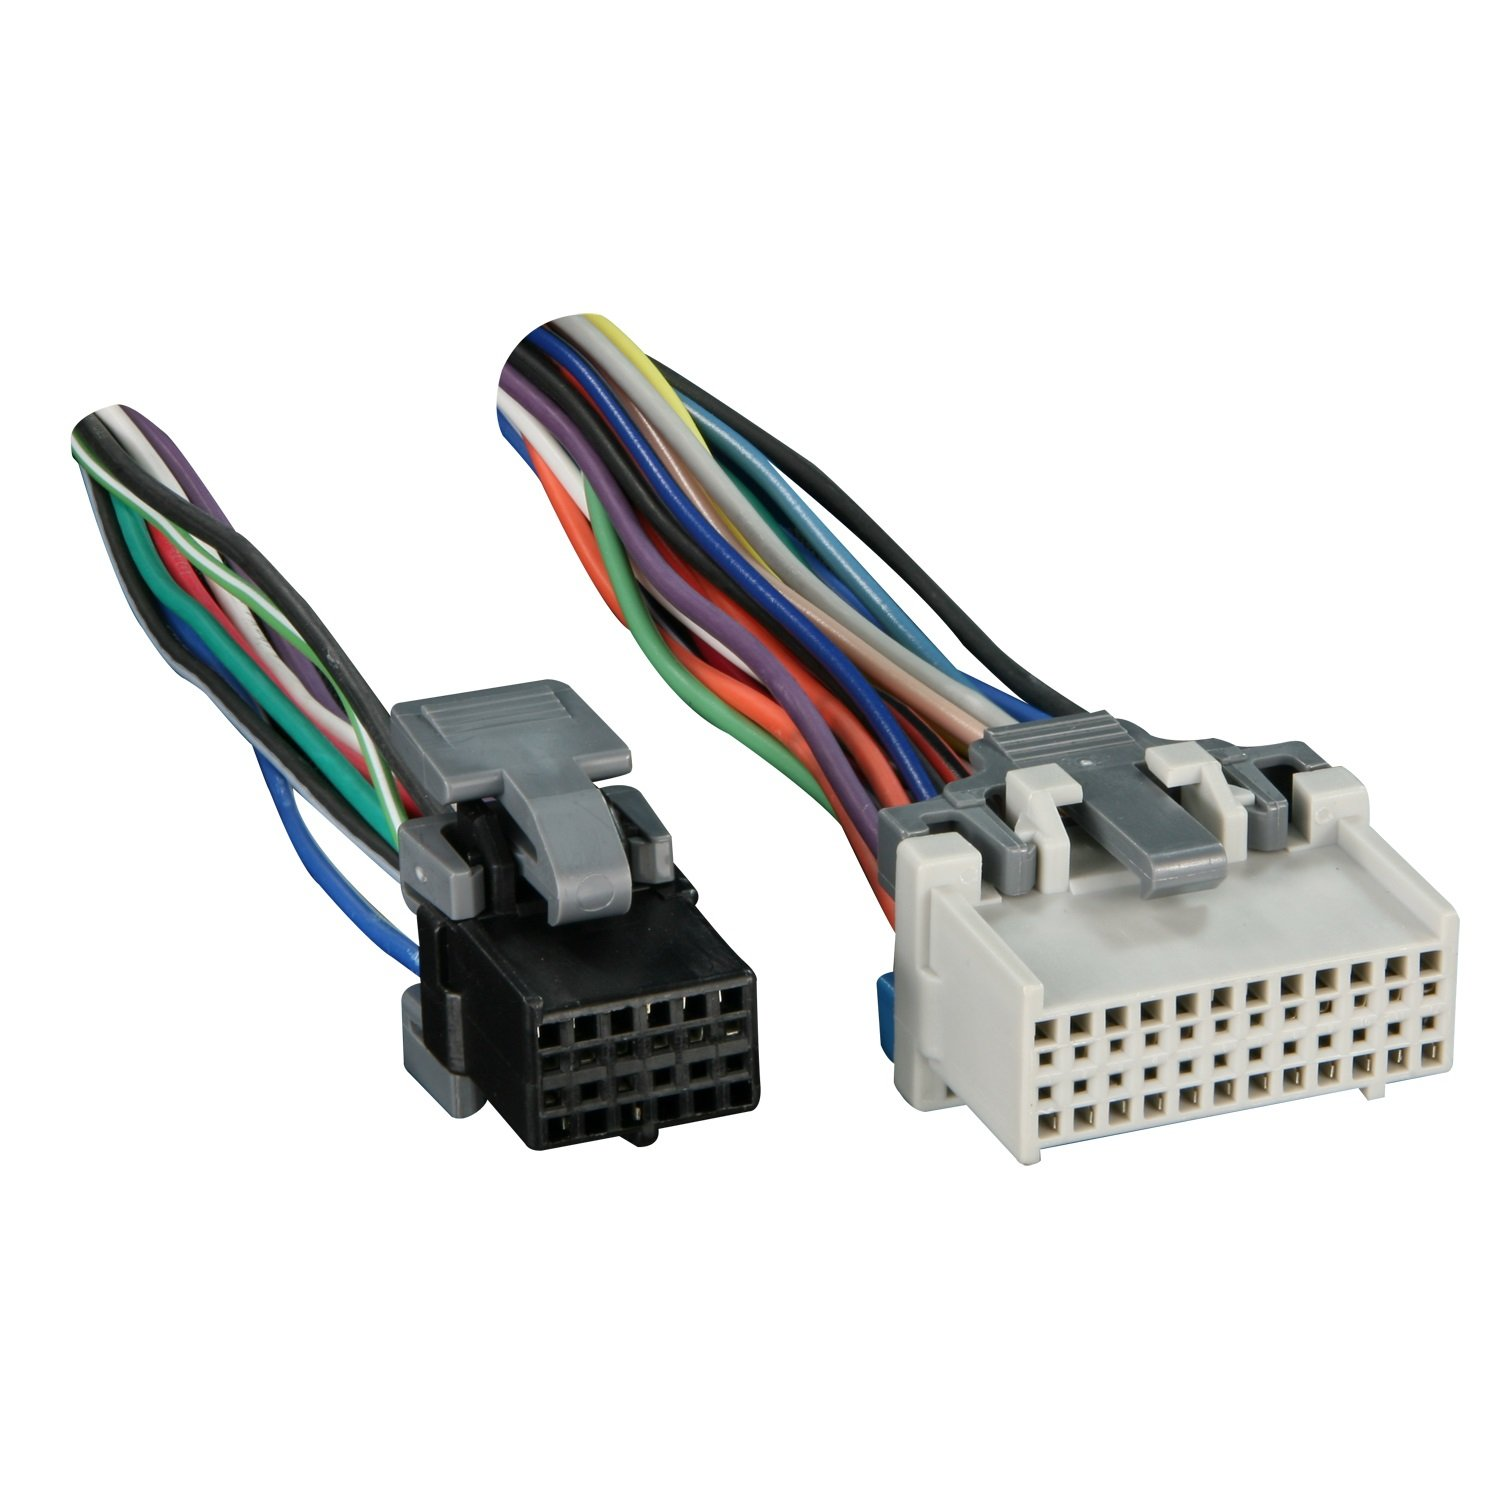 711log4bdML._SL1500_ amazon com metra turbowires 71 2003 1 wiring harness car electronics GM Wiring Color Codes at crackthecode.co